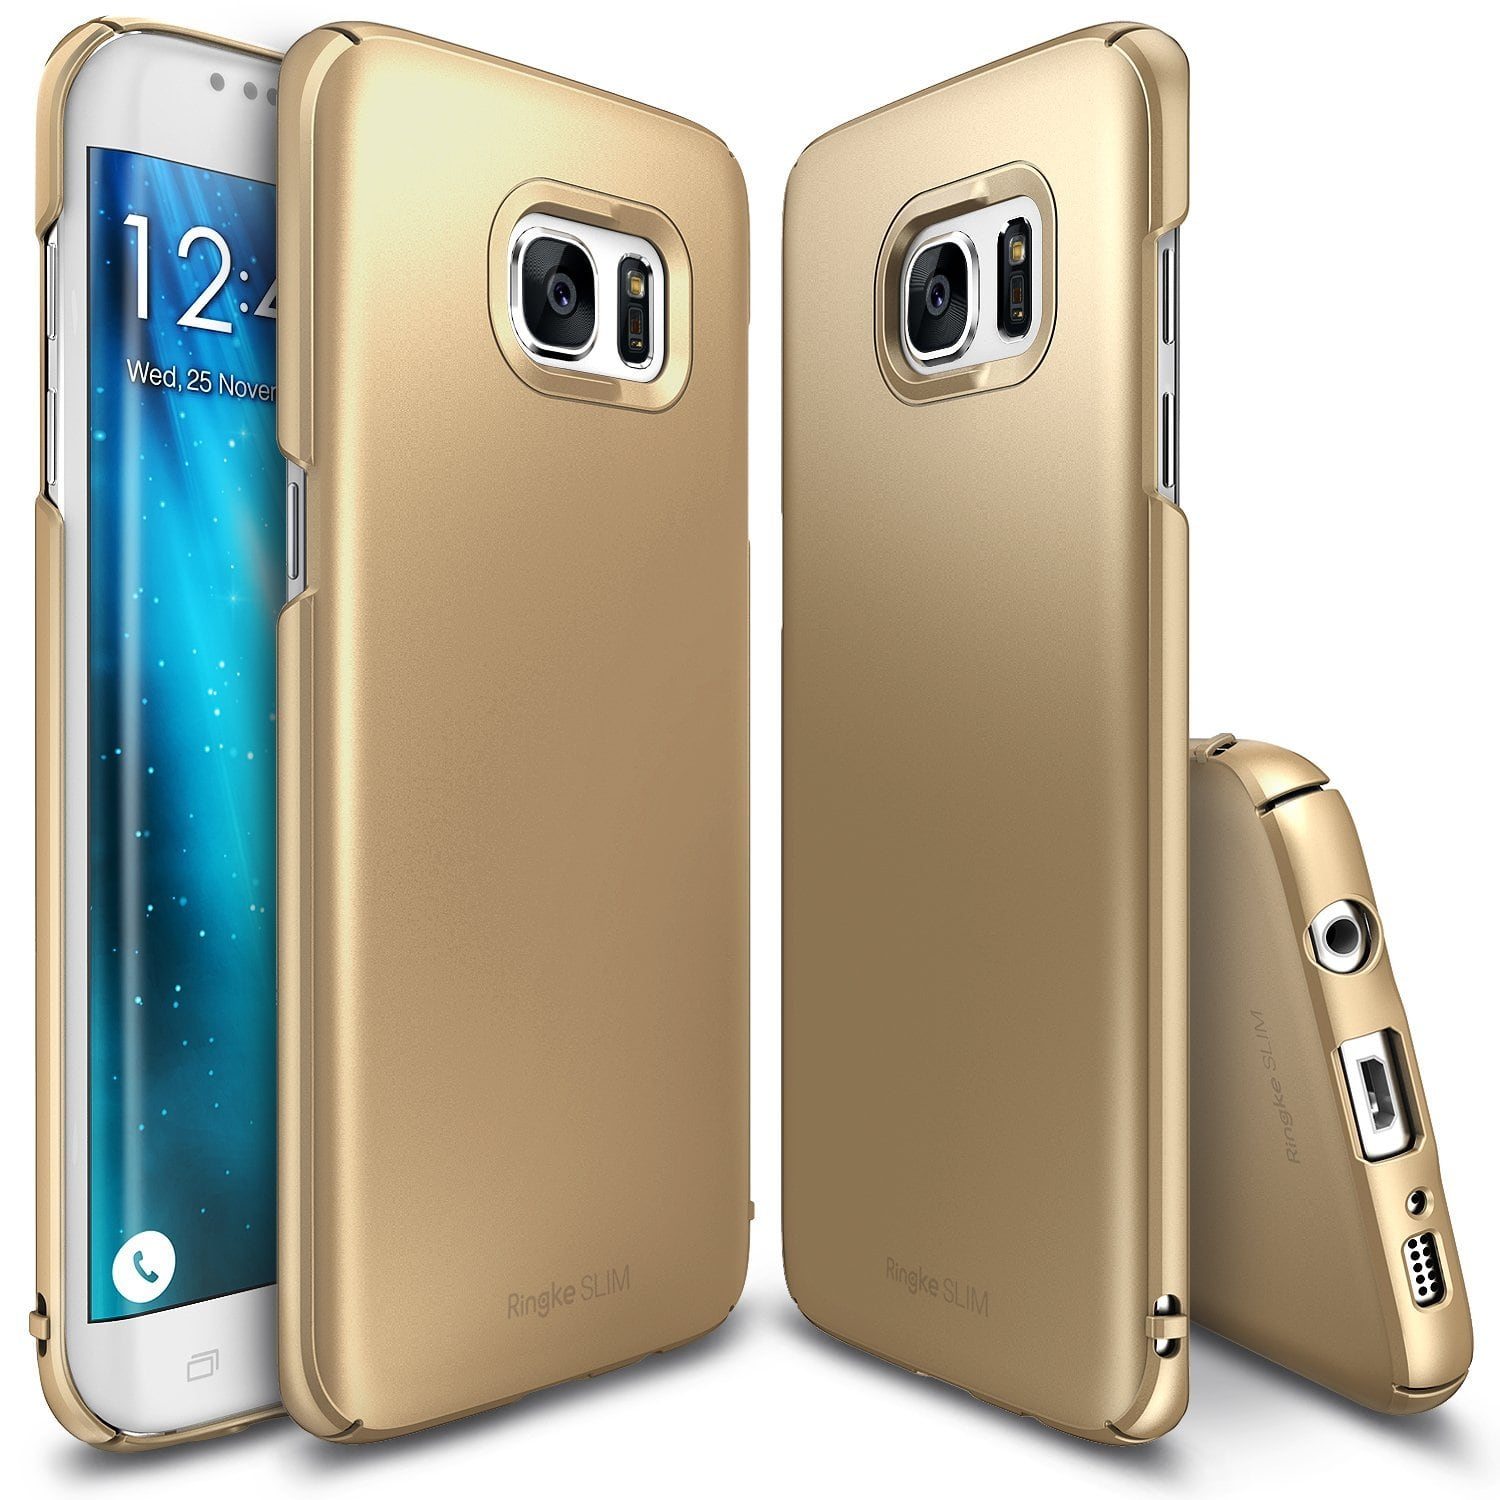 Ringke Cases for Galaxy S7/S7 Edge and Nexus 6 $3.99 + Free Shipping